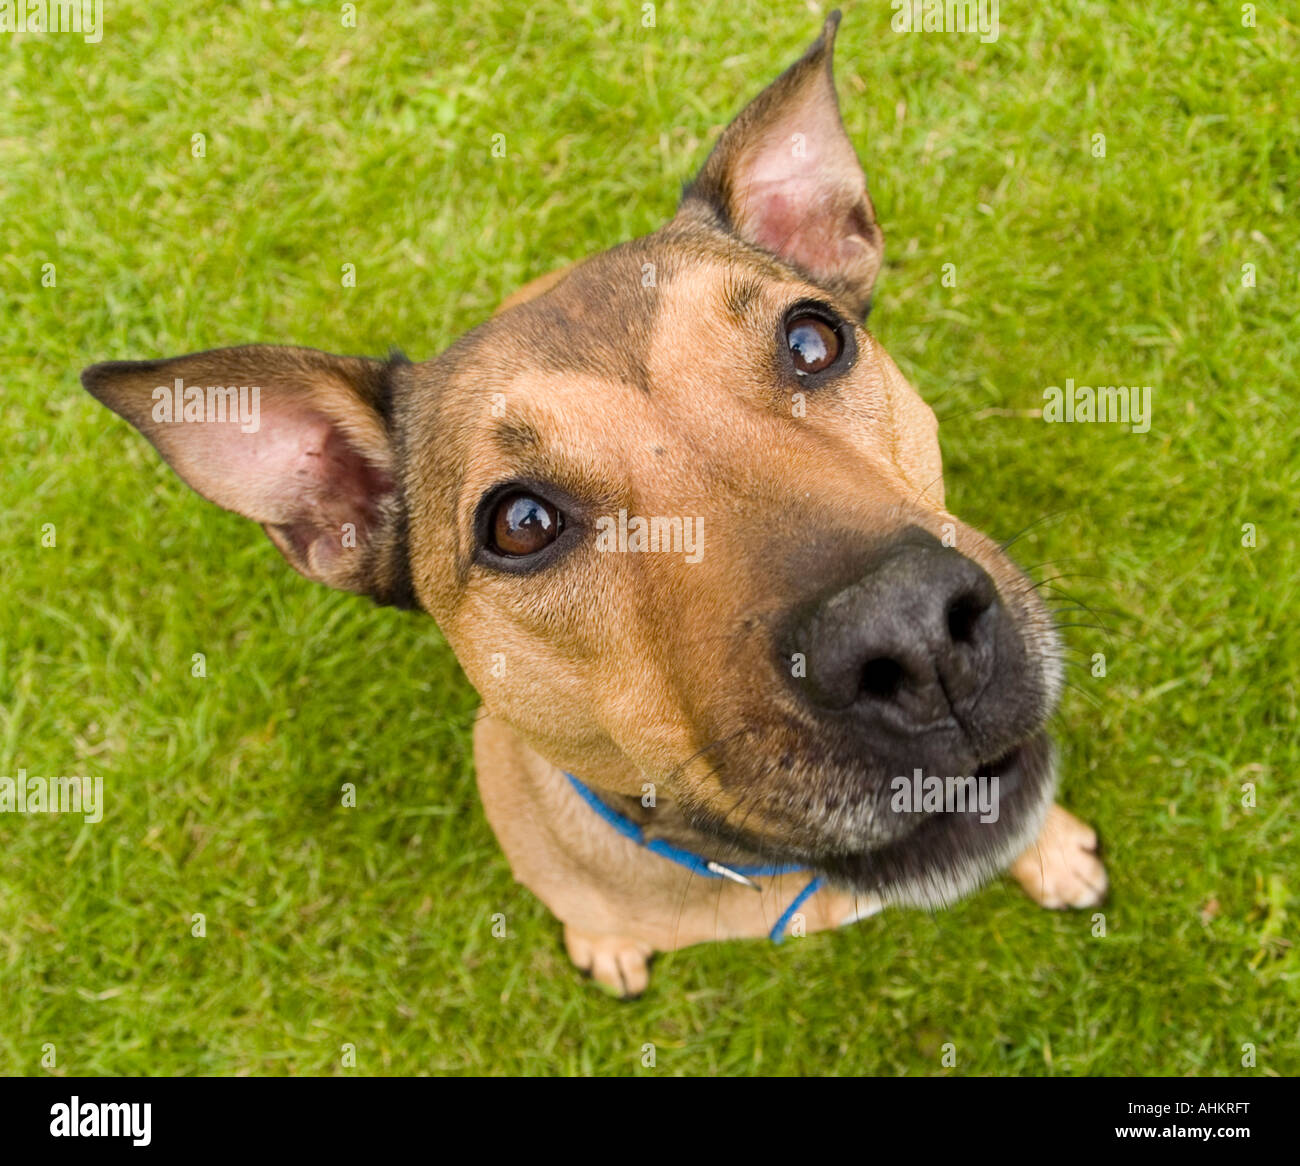 Close up of a cute brown dog looking up into the camera - Stock Image